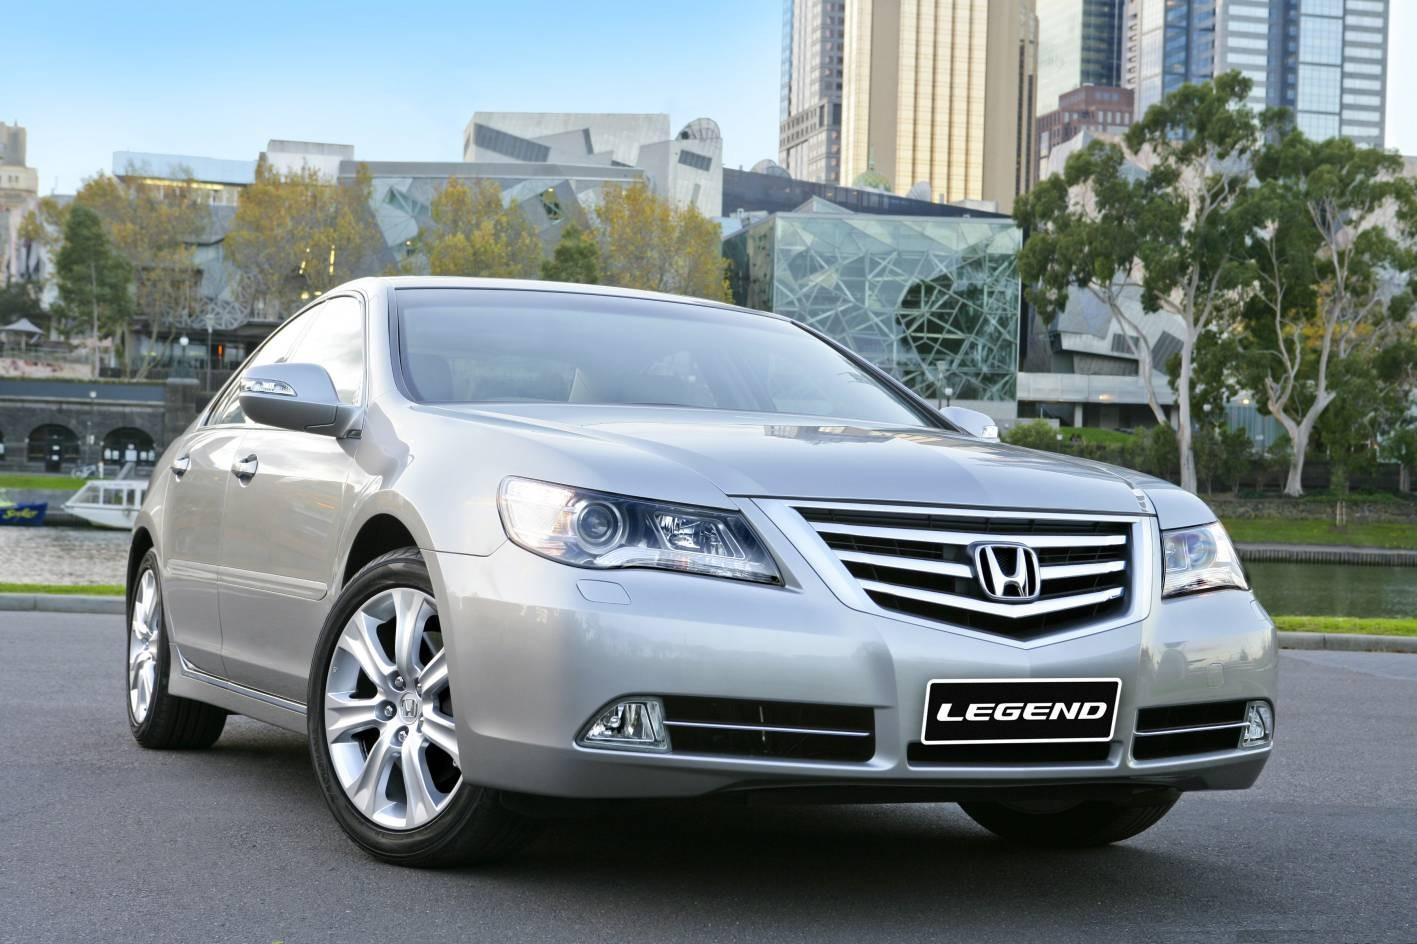 2010 Honda Legend #11